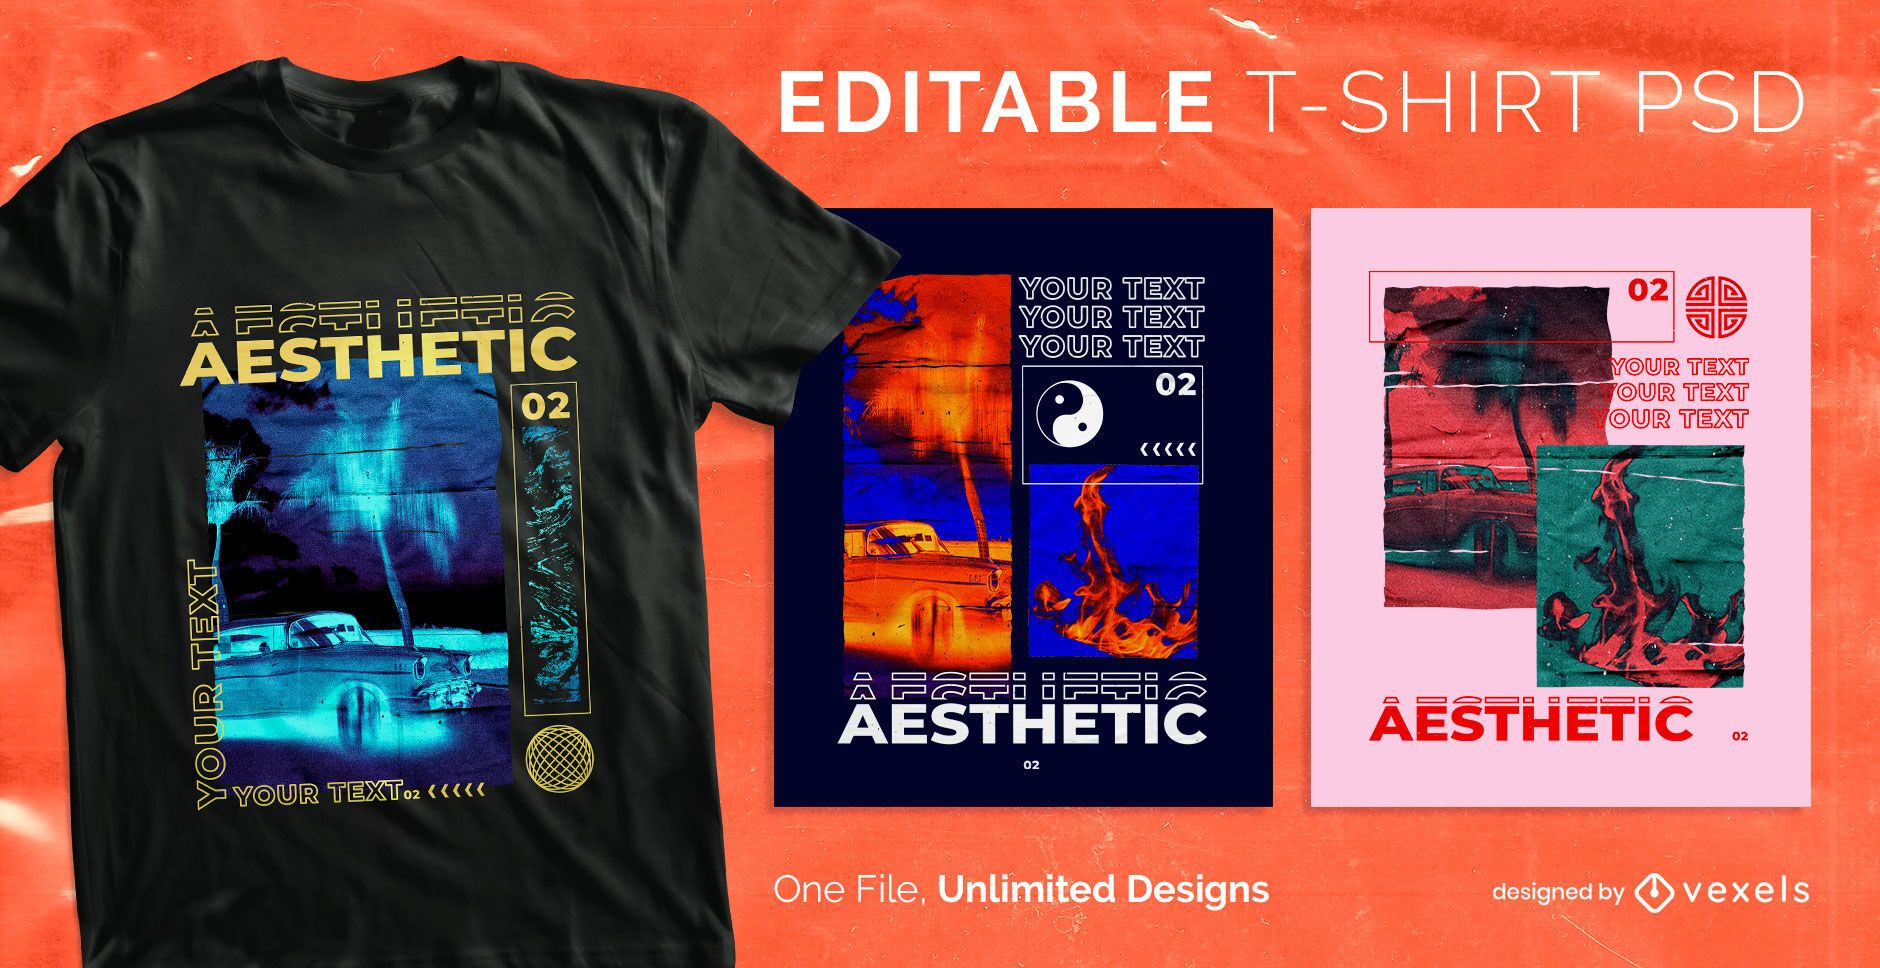 Aesthetic scalable t-shirt psd